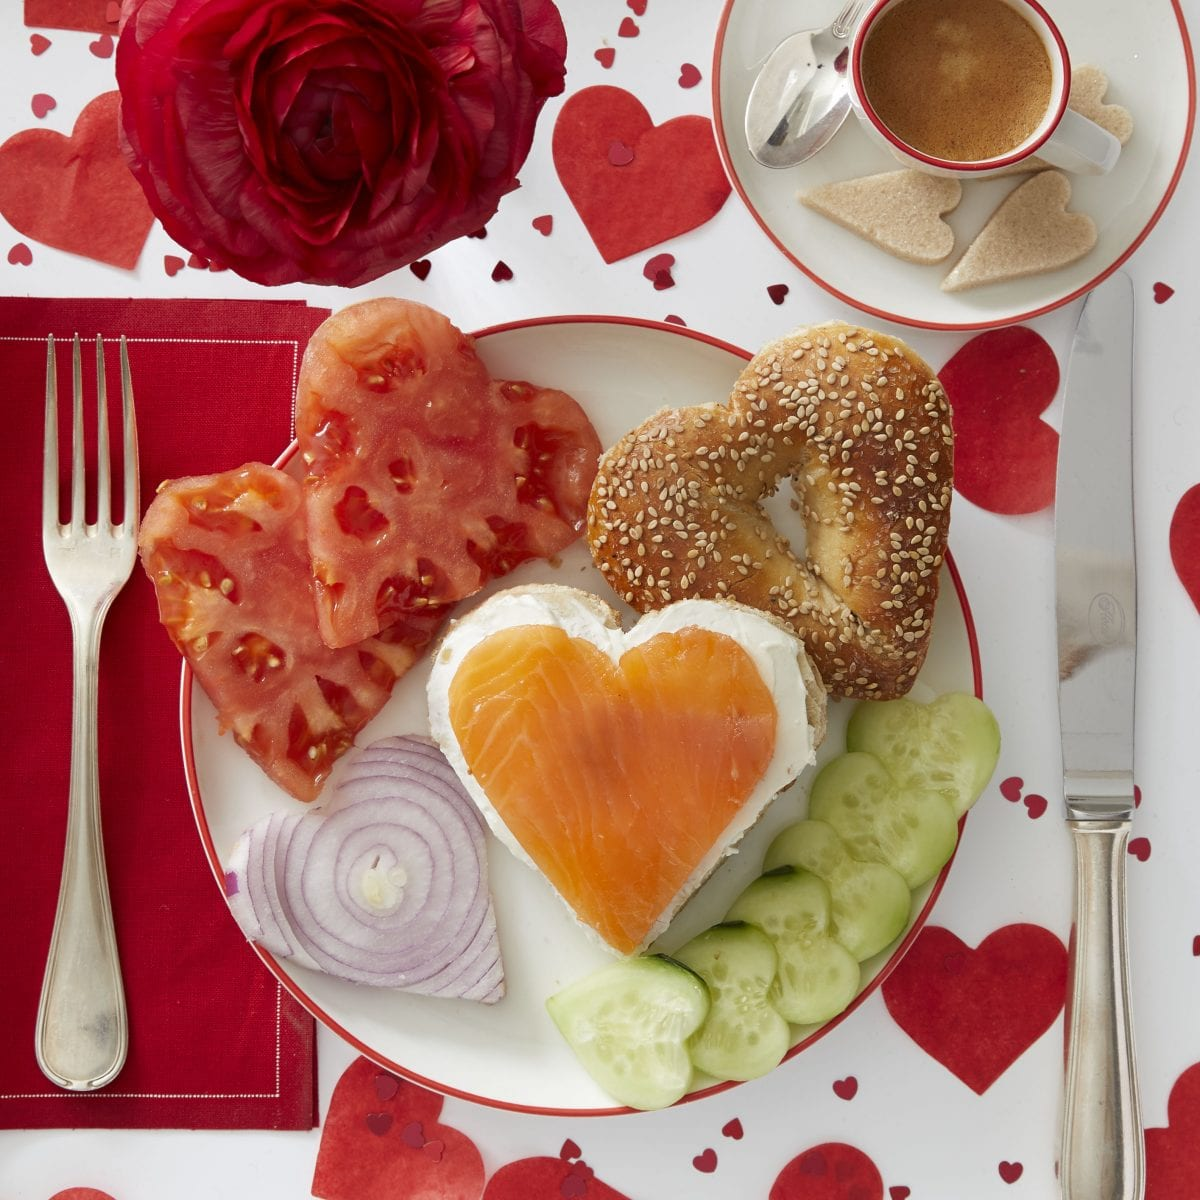 Darcy Miller Designs, Bagel Breakfast, Bagel, cookie cutter, valentines, heart-shaped, lox, cream cheese, cucumber, onion, tomato, bagel bar, brunch, cut out shape, Darcy Miller, DIY